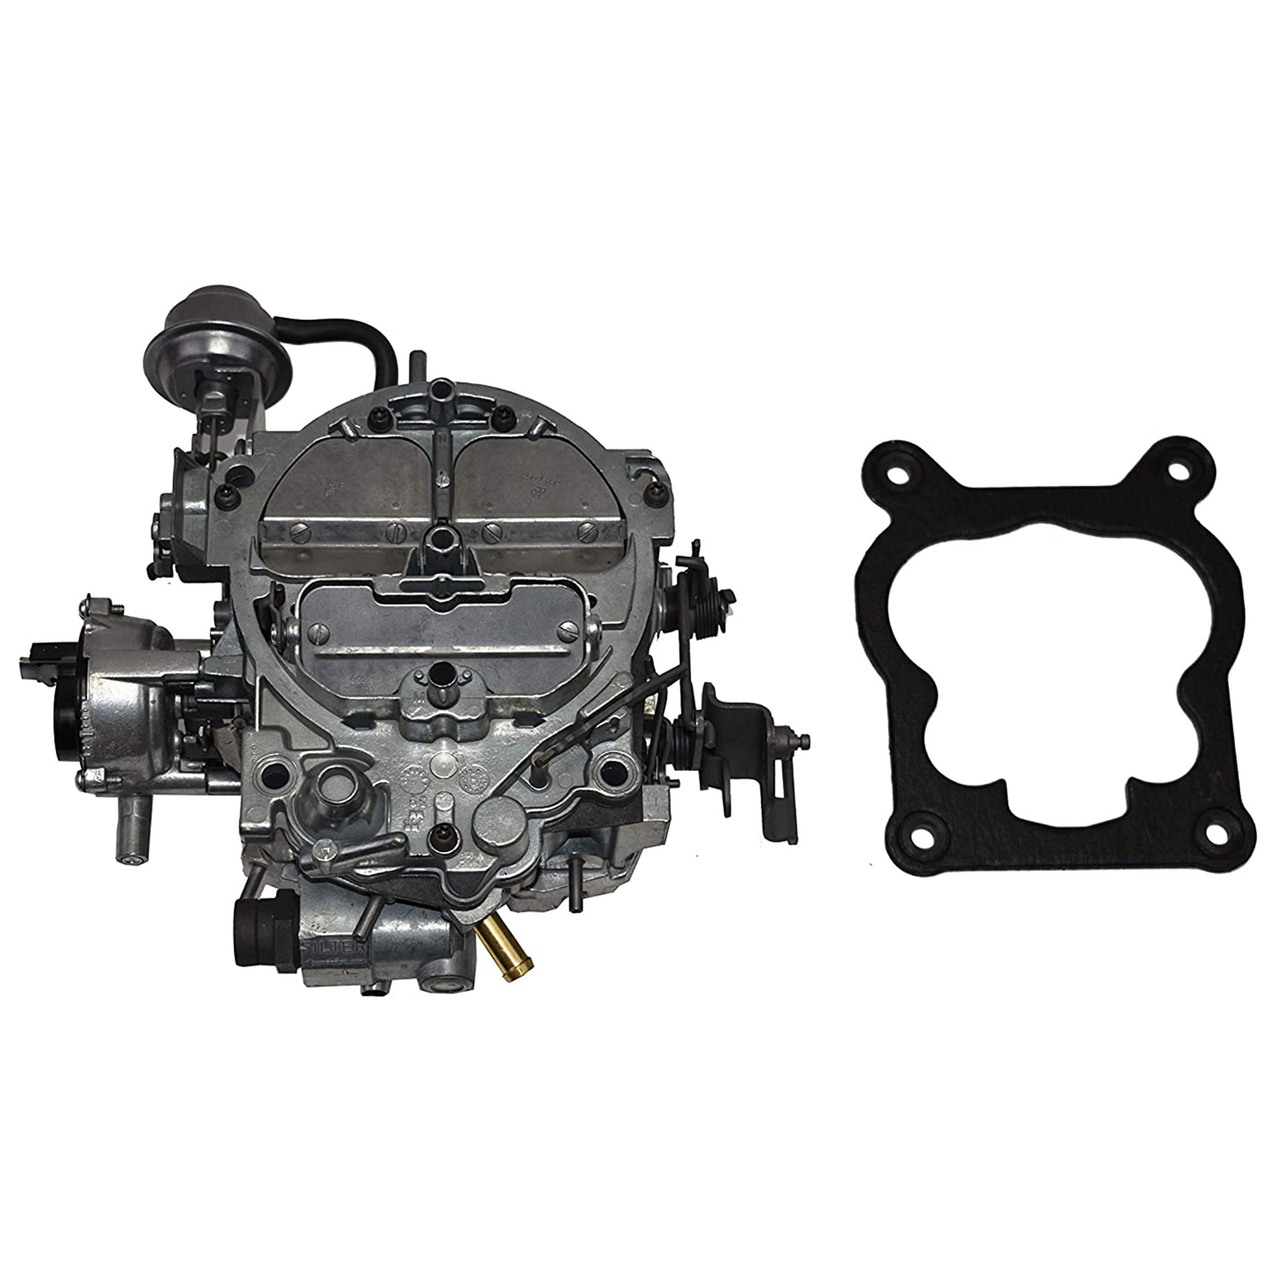 A-Team Performance Rochester Quadrajet Carburetor 4MV 80-89 Electric Choke